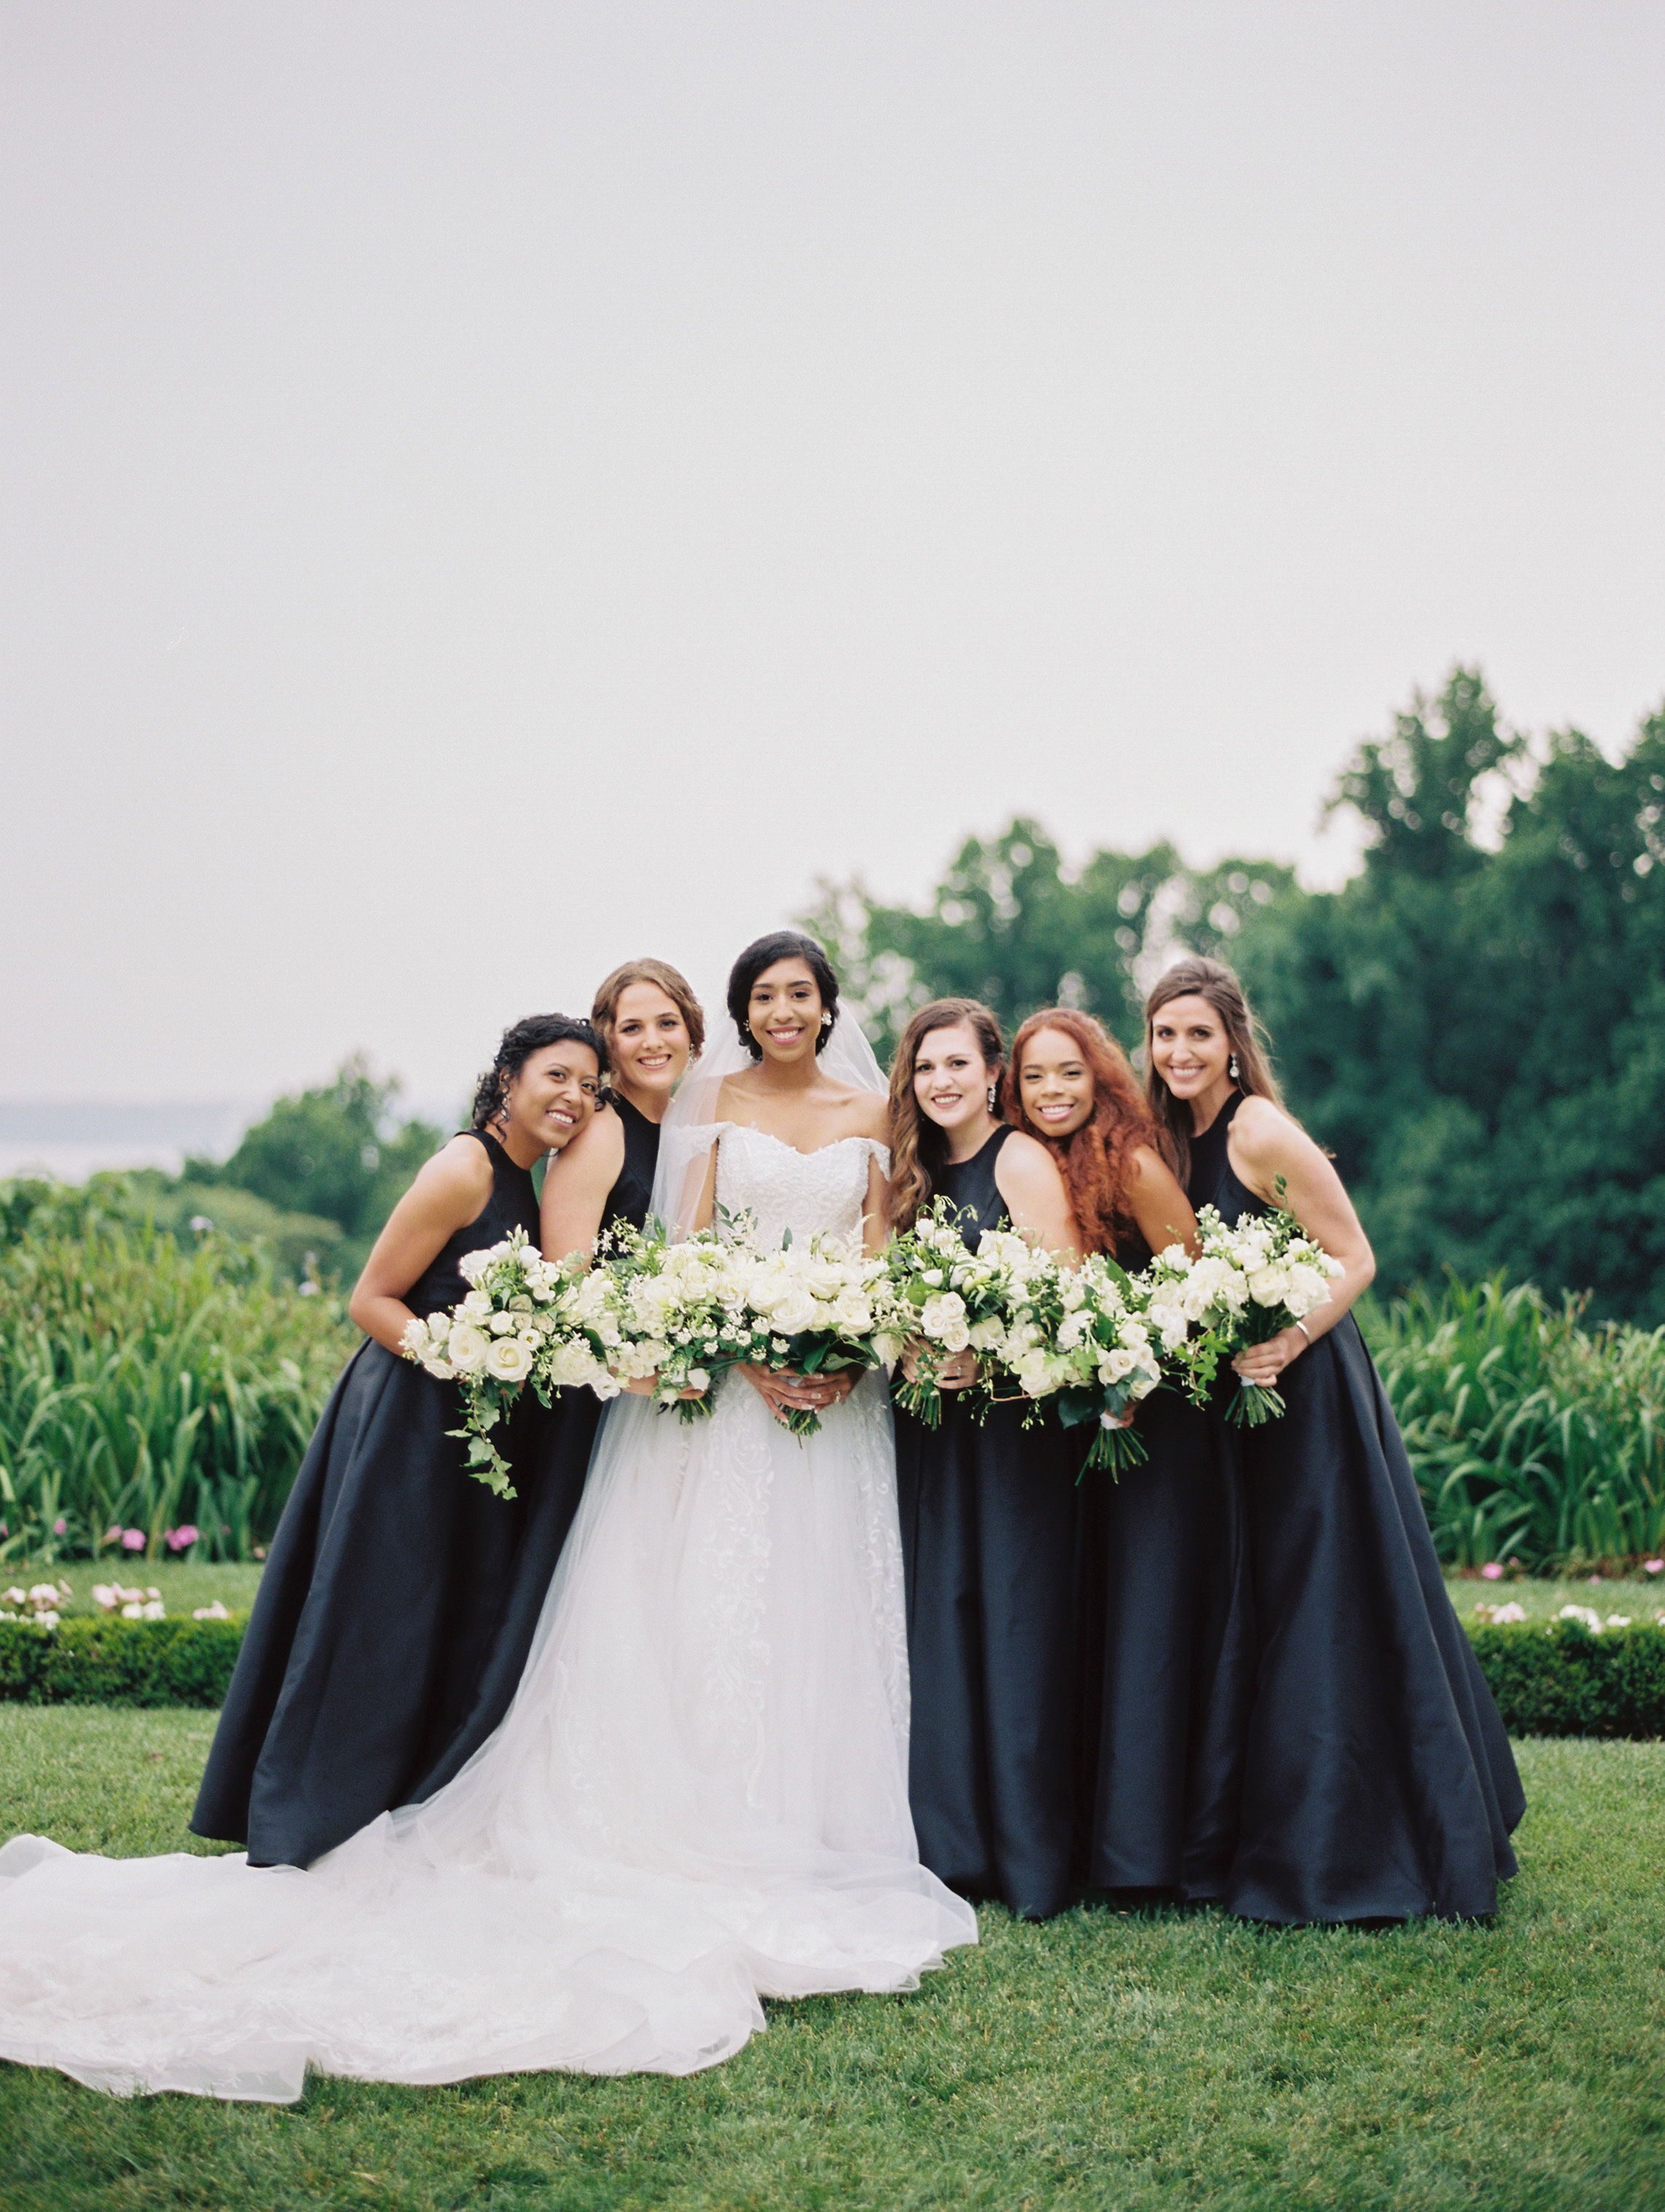 These Black Bridesmaids Dresses Are A Perfect Detail To This Maryland Outdoor Wedding With European Detail Black Bridesmaid Dresses Wedding Inspiration Wedding [ 3035 x 2285 Pixel ]